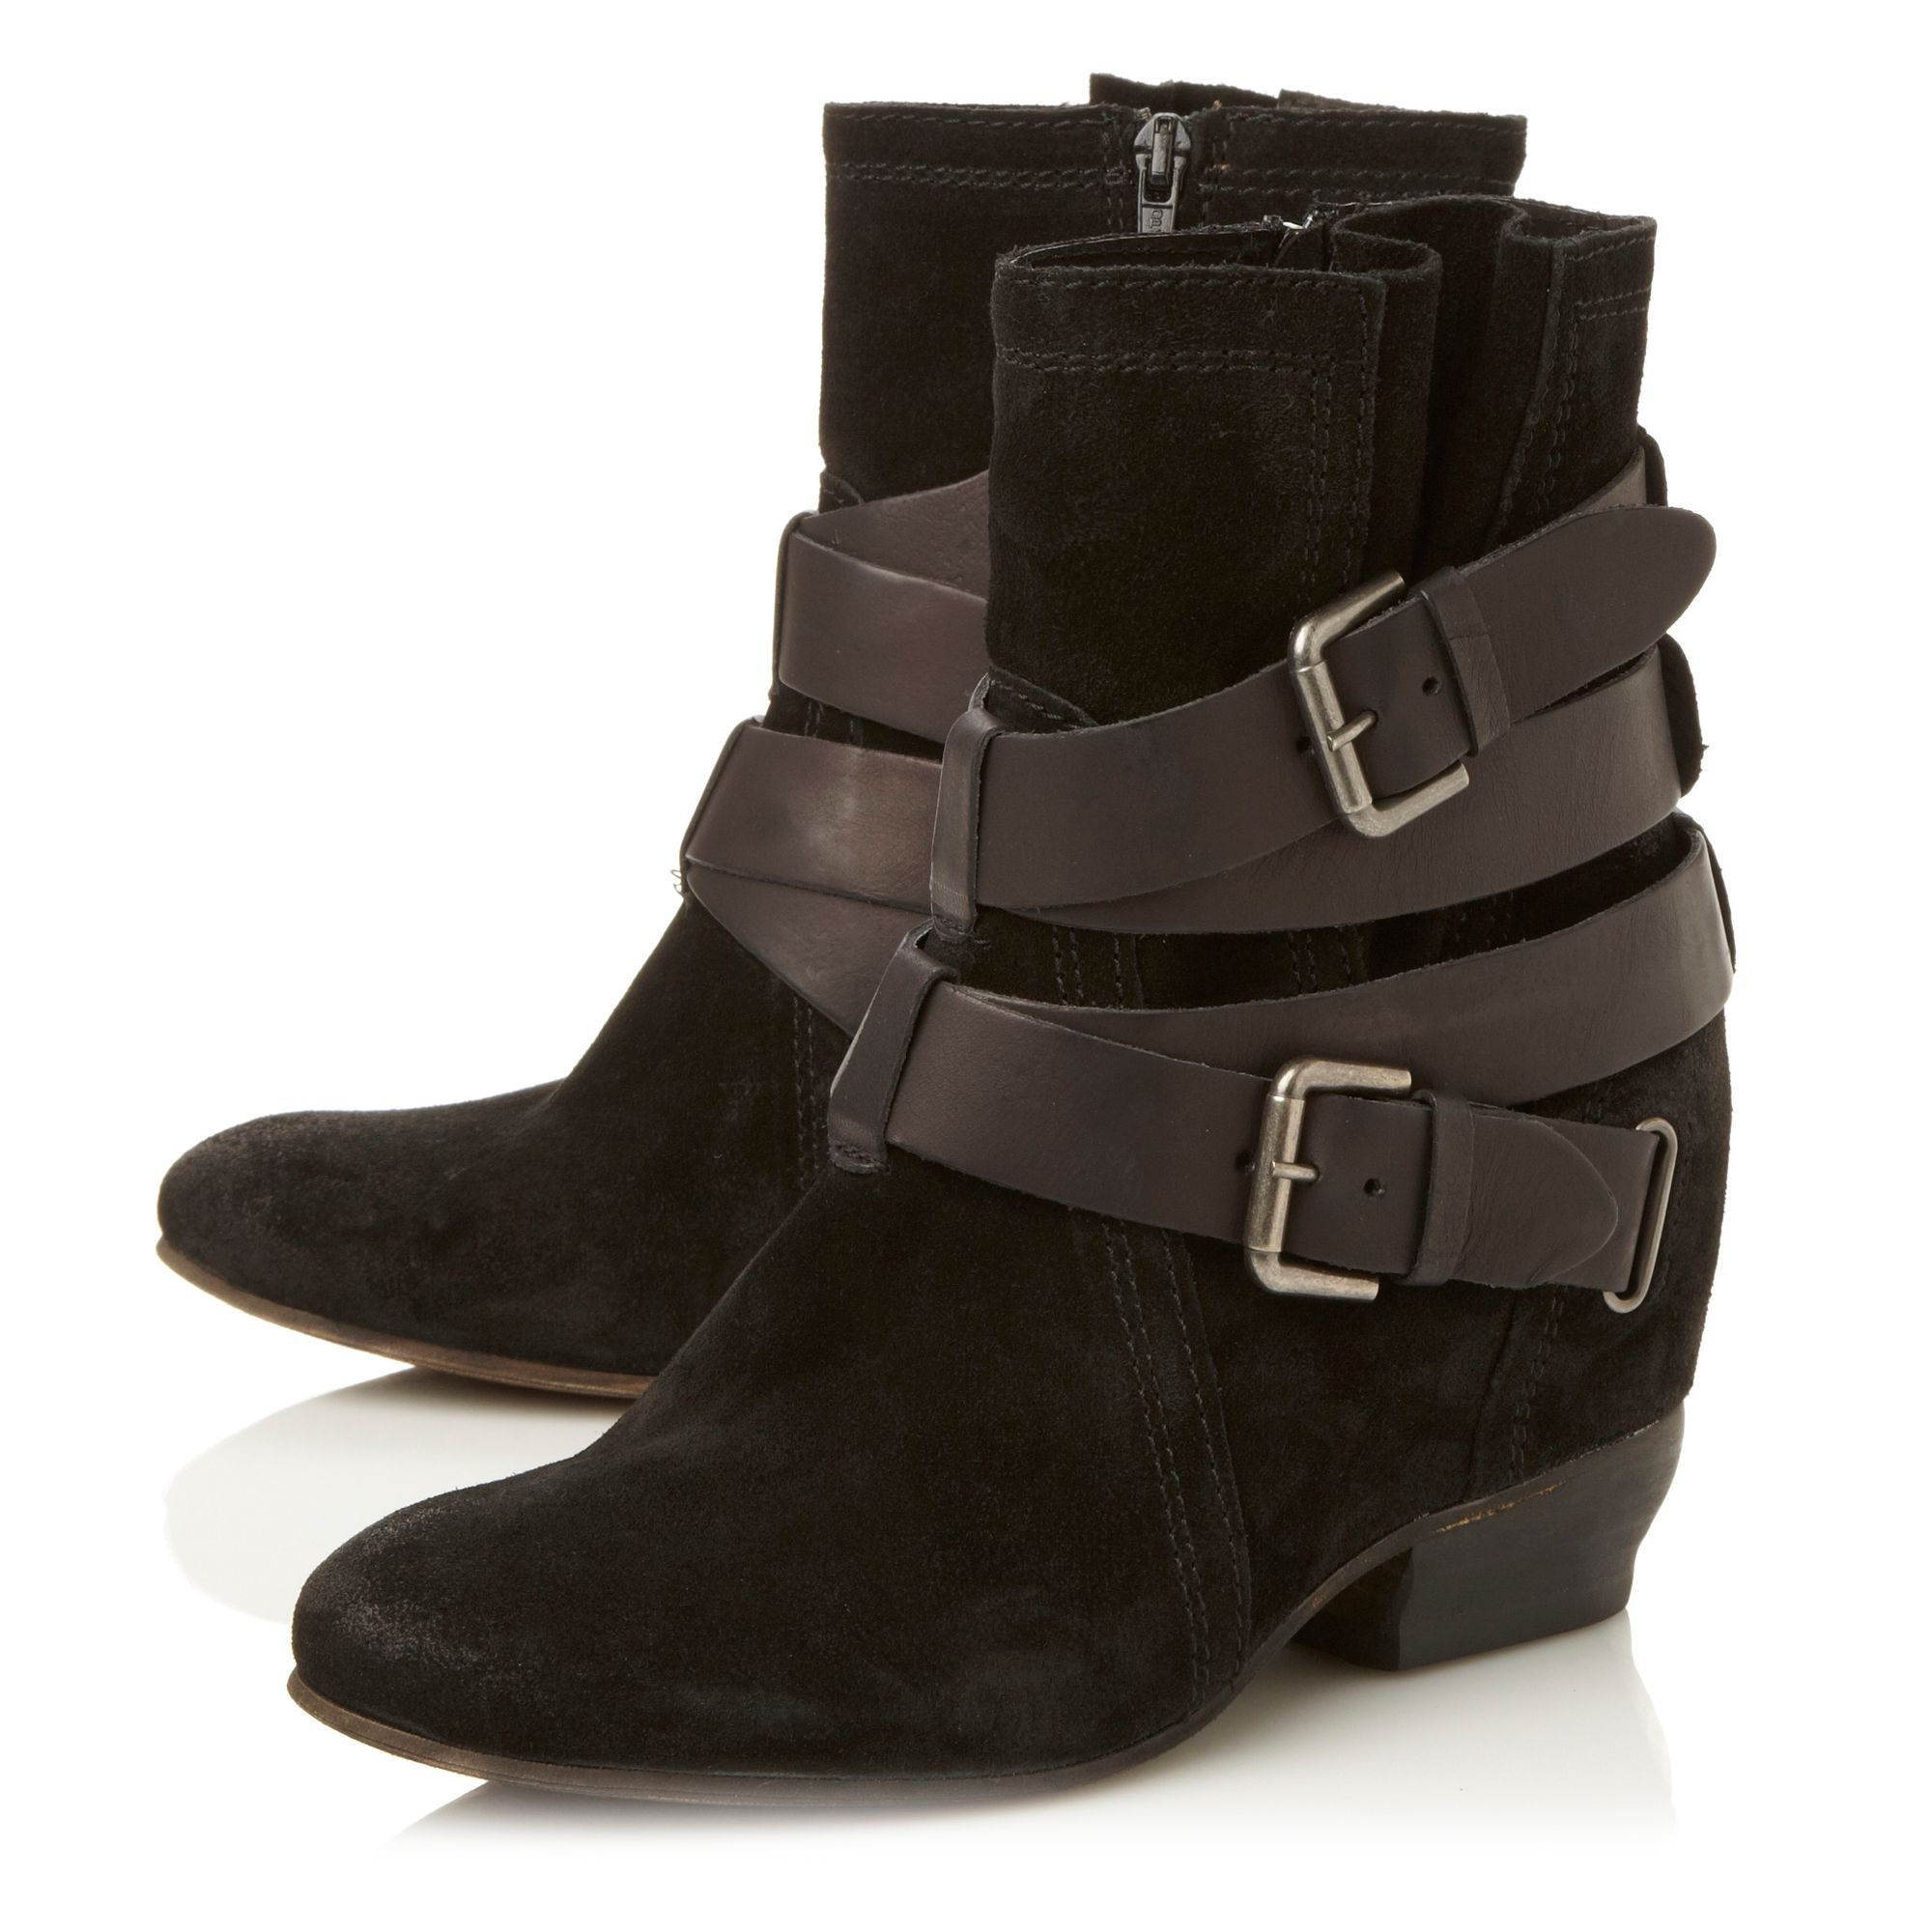 Pitch consealed wedge strap boots